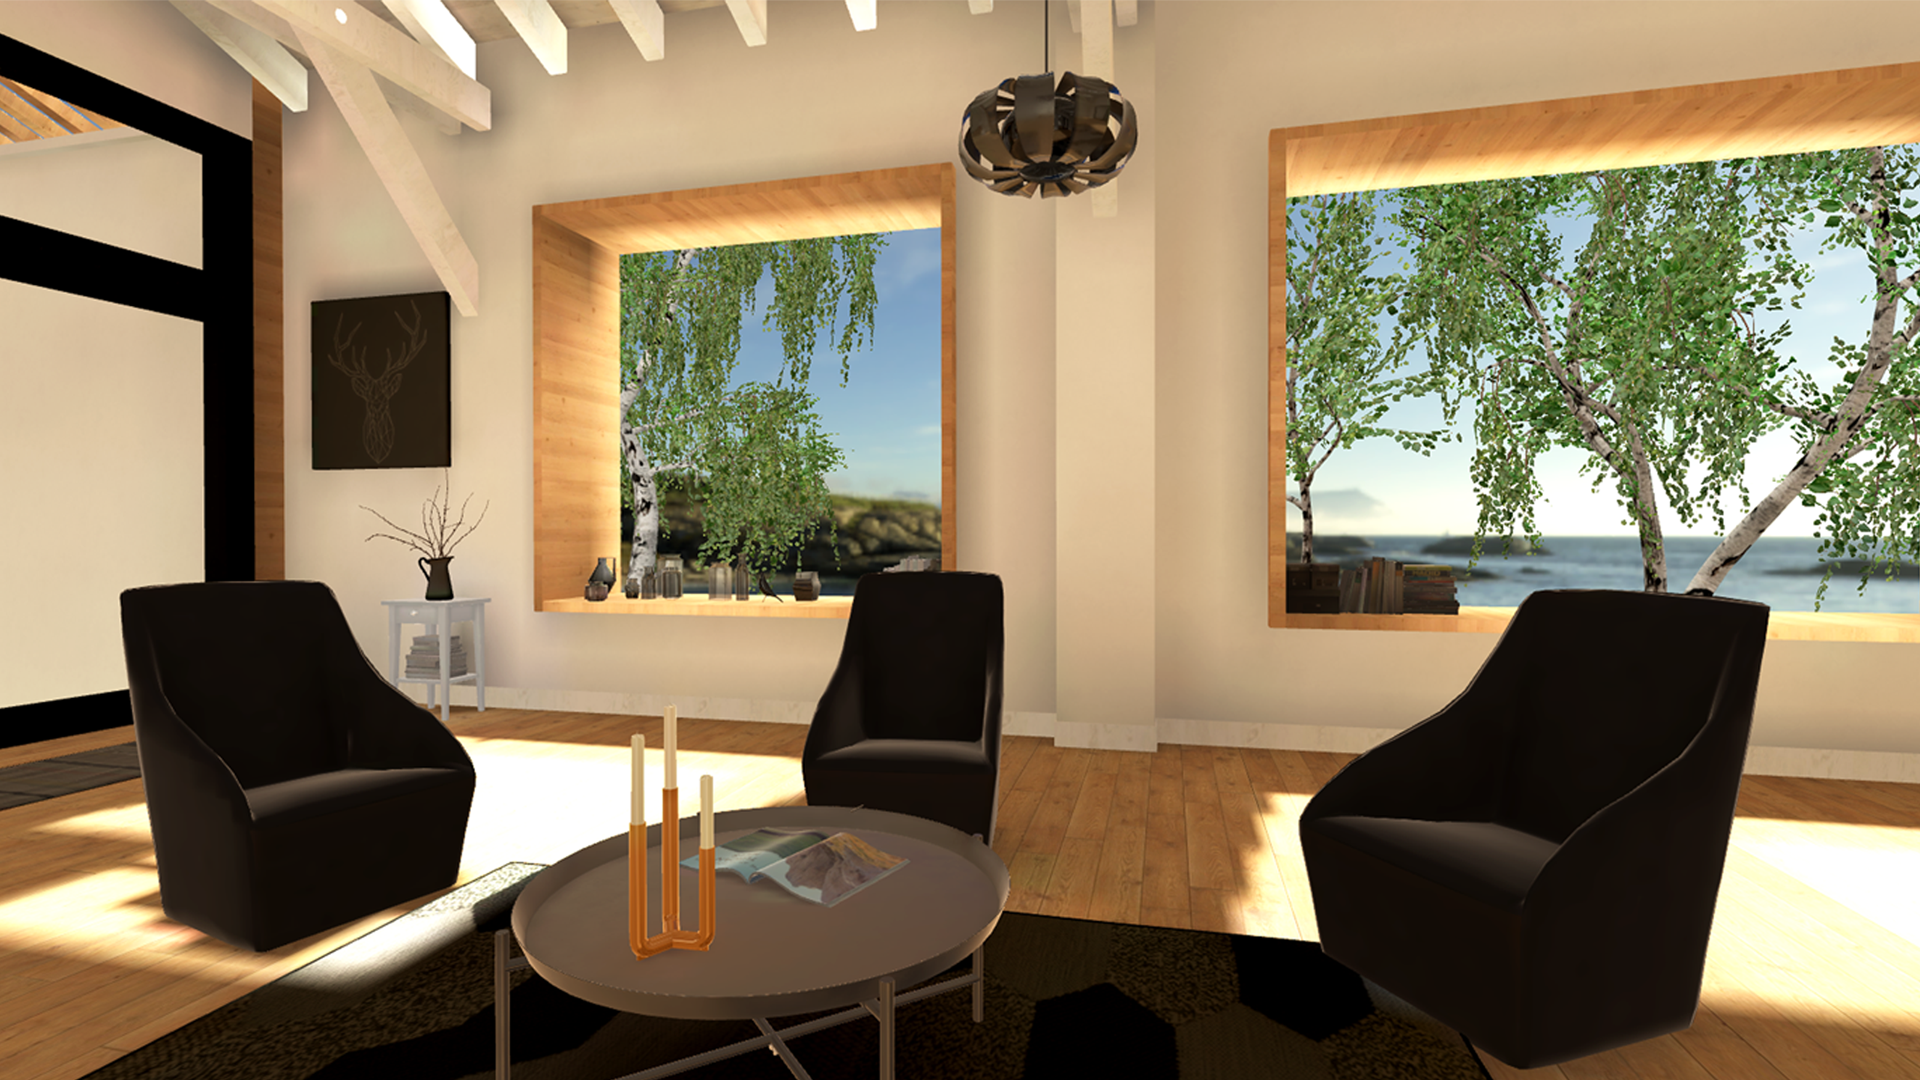 image of large open room 3D environment for group therapy in VR